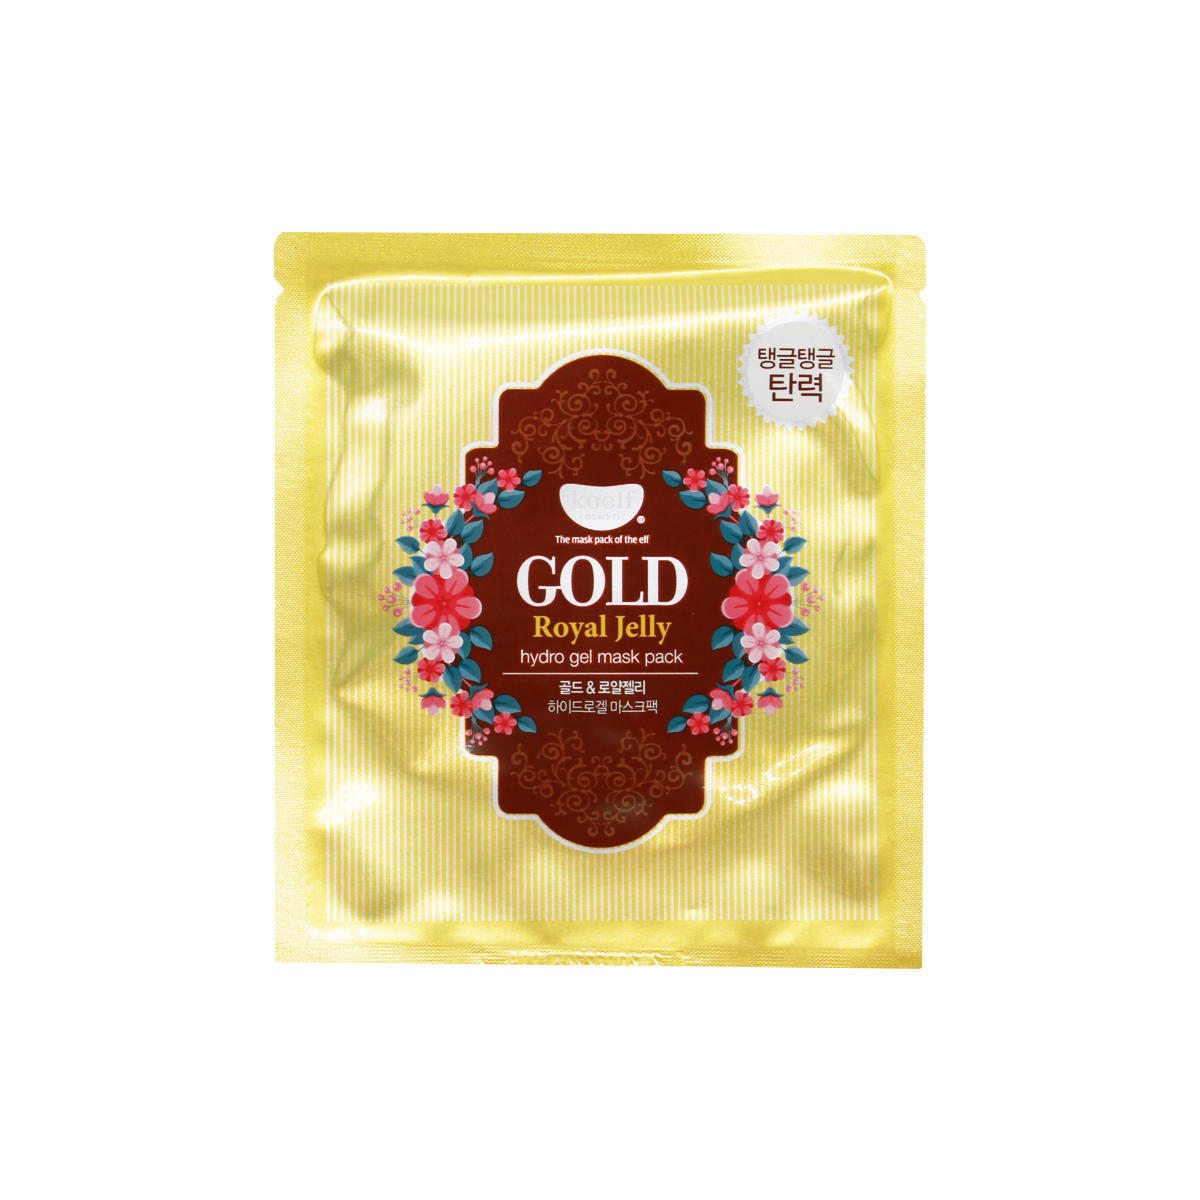 Гидрогелевые маски Гидрогелевая маска Koelf Gold & Royal Jelly Hydrogel Mask Pack, 30 мл import_files_a5_a503bcd75a5a11e980fb3408042974b1_a503bcd85a5a11e980fb3408042974b1.jpg